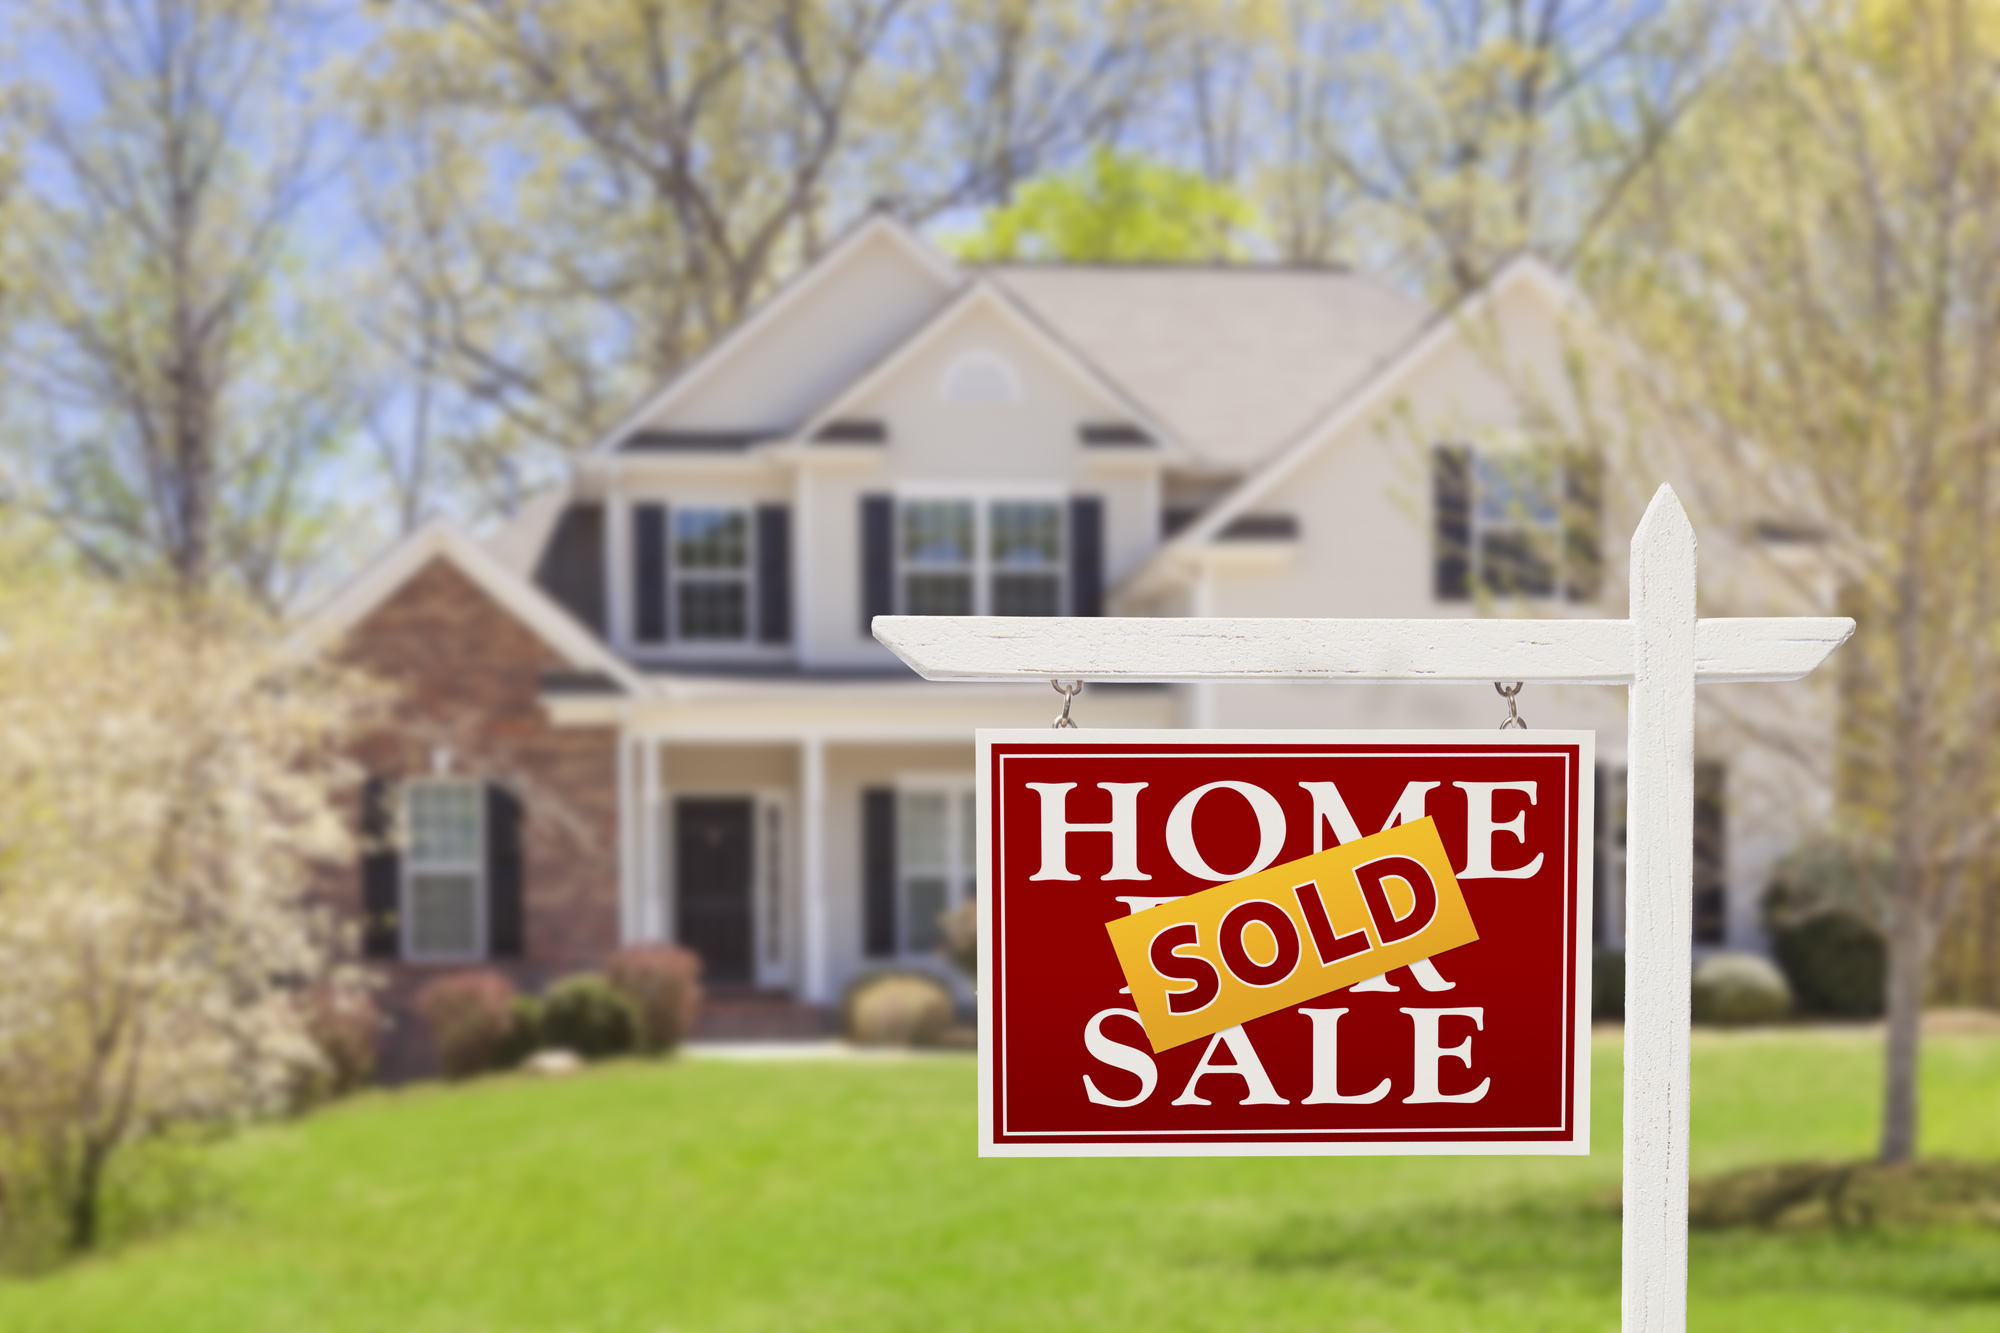 5 Reasons You Need An Experienced Real Estate Agent When Buying A House In  Murfreesboro, Tn October 31, 2016